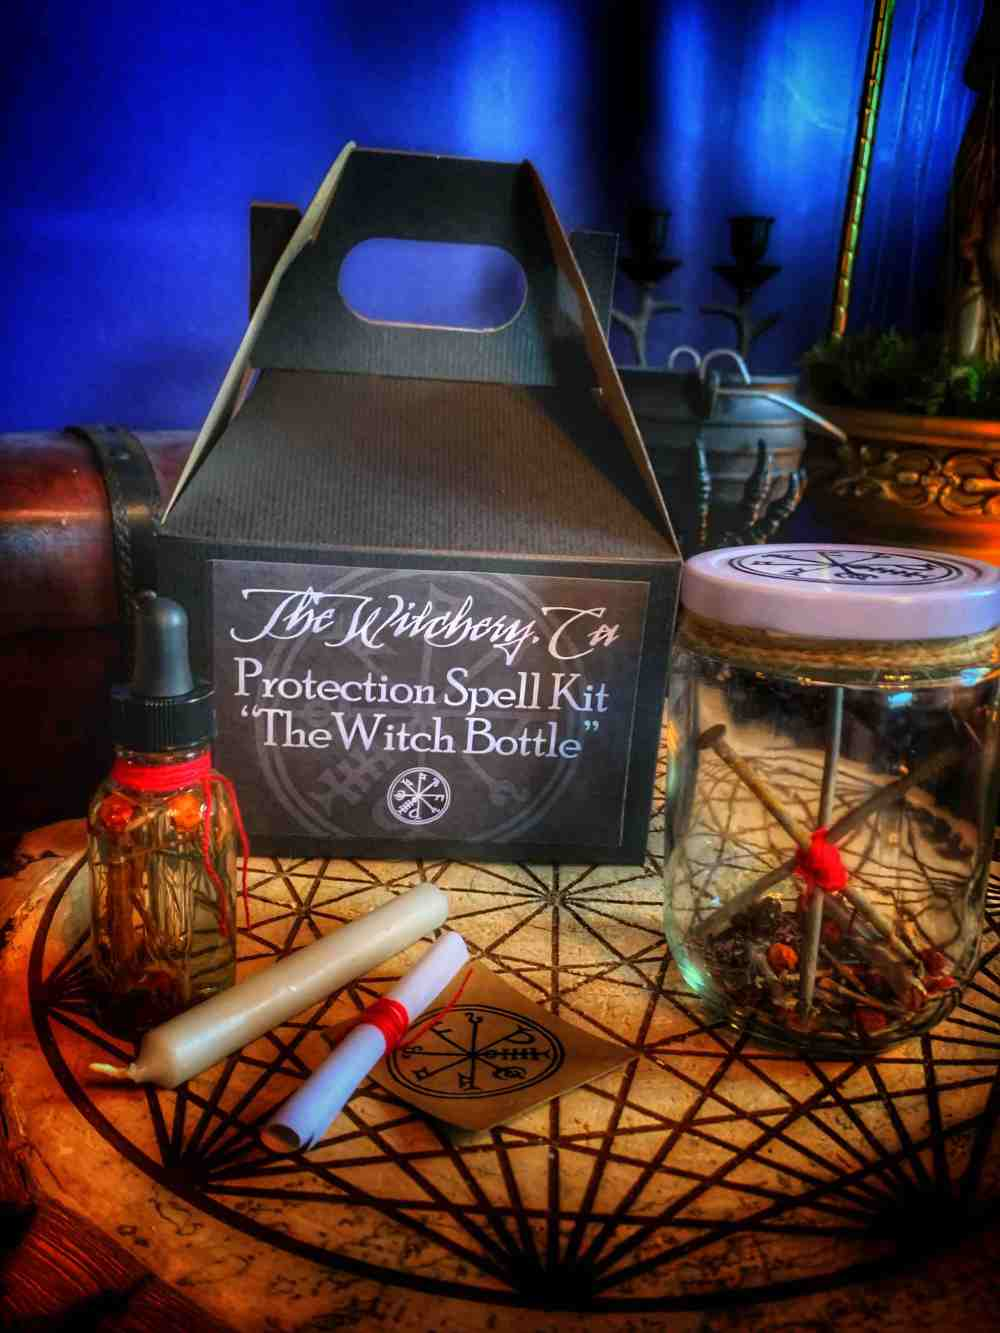 Protection Spell Kit - The Witch Bottle